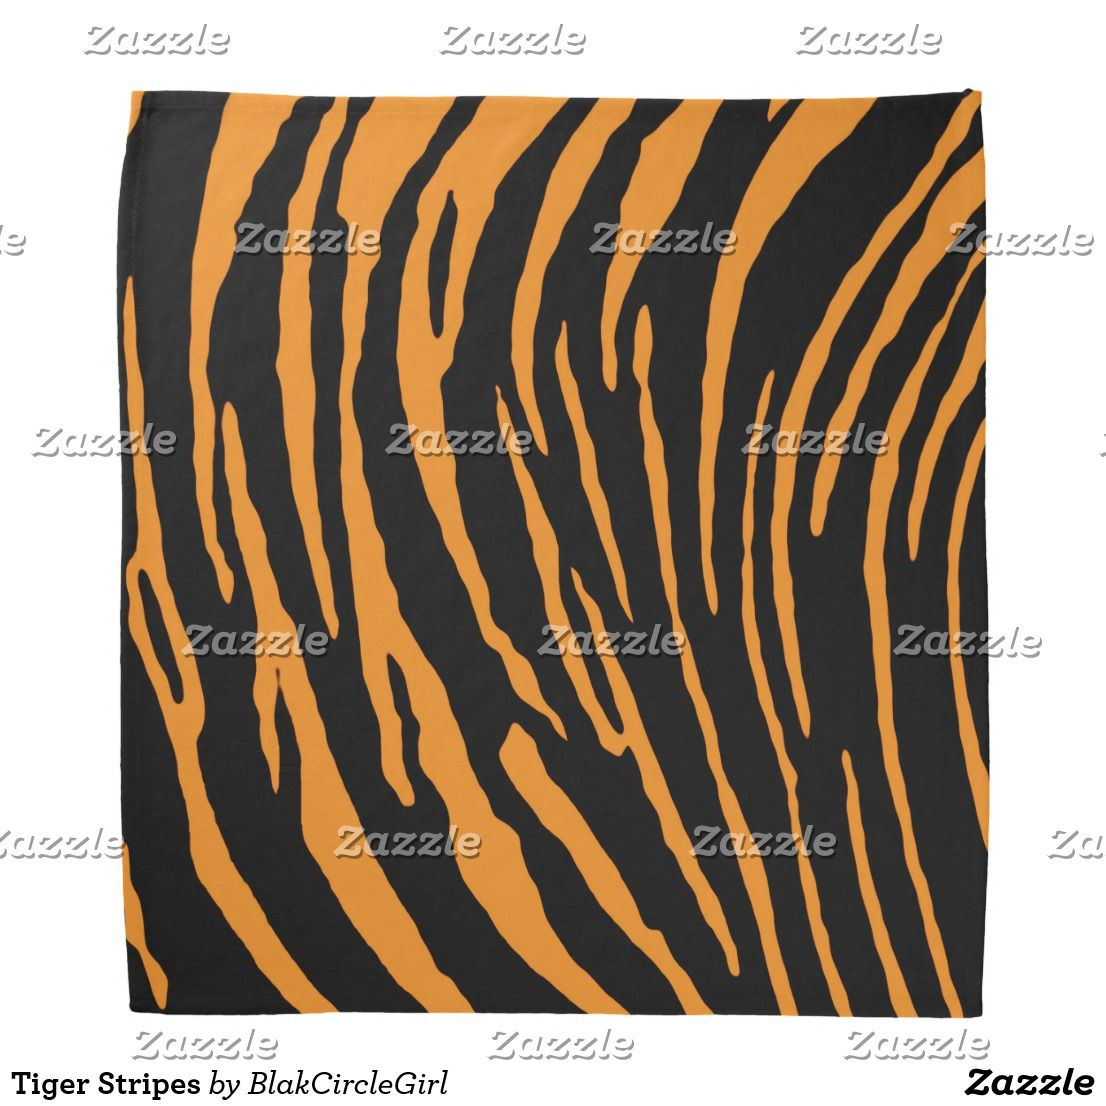 Tiger Stripes Bandana Tigerstripes Bandanna Zazzle